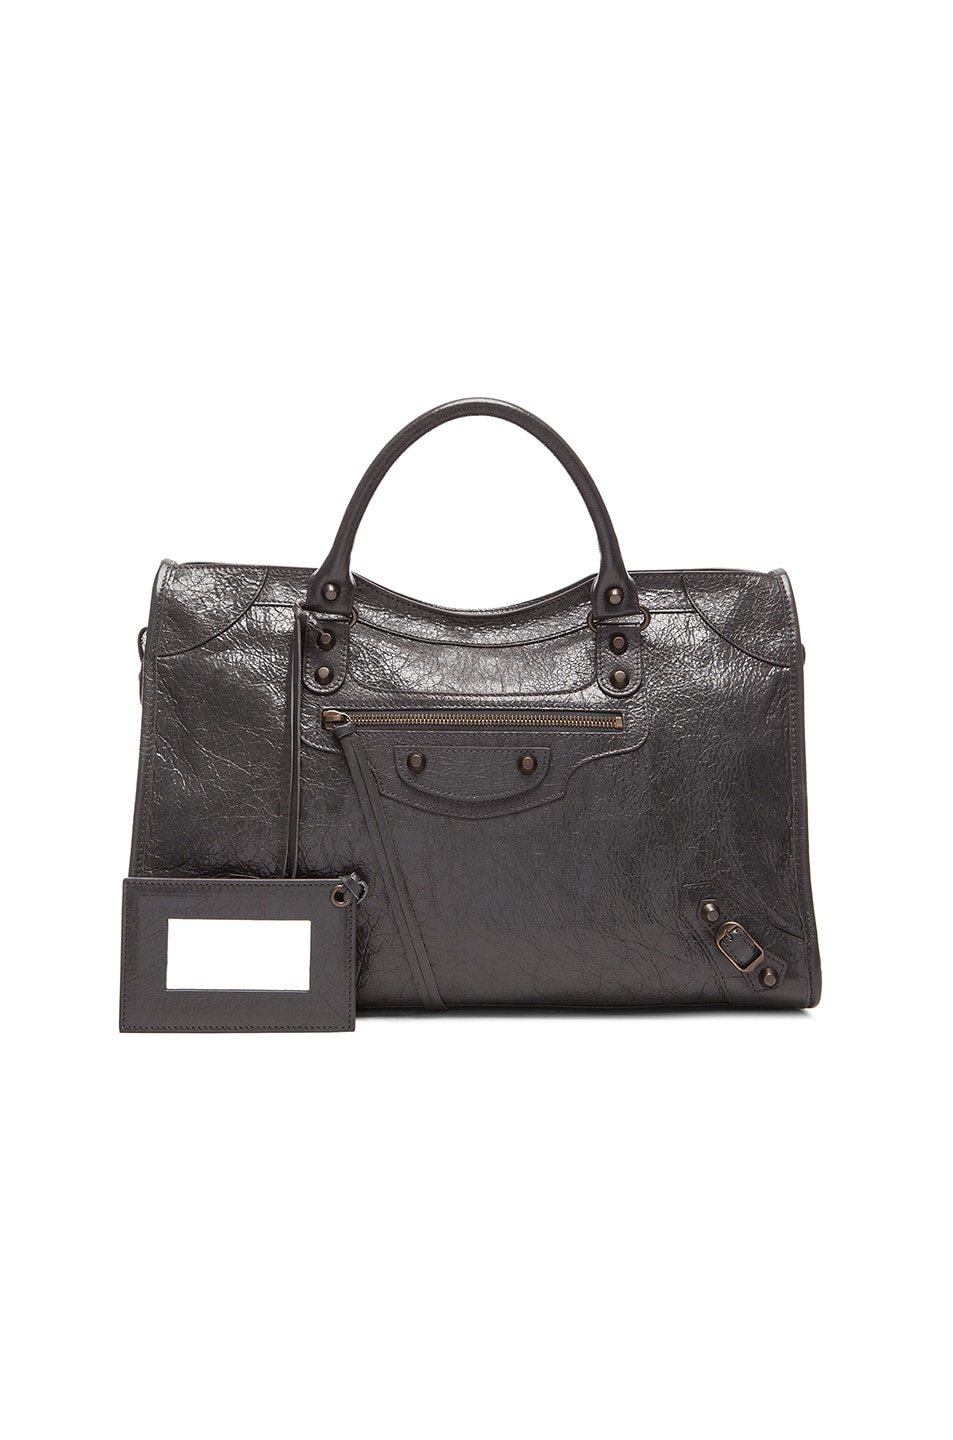 089e25a08d3d Image 1 of Balenciaga Classic City Bag with Traditional Studs in Anthracite